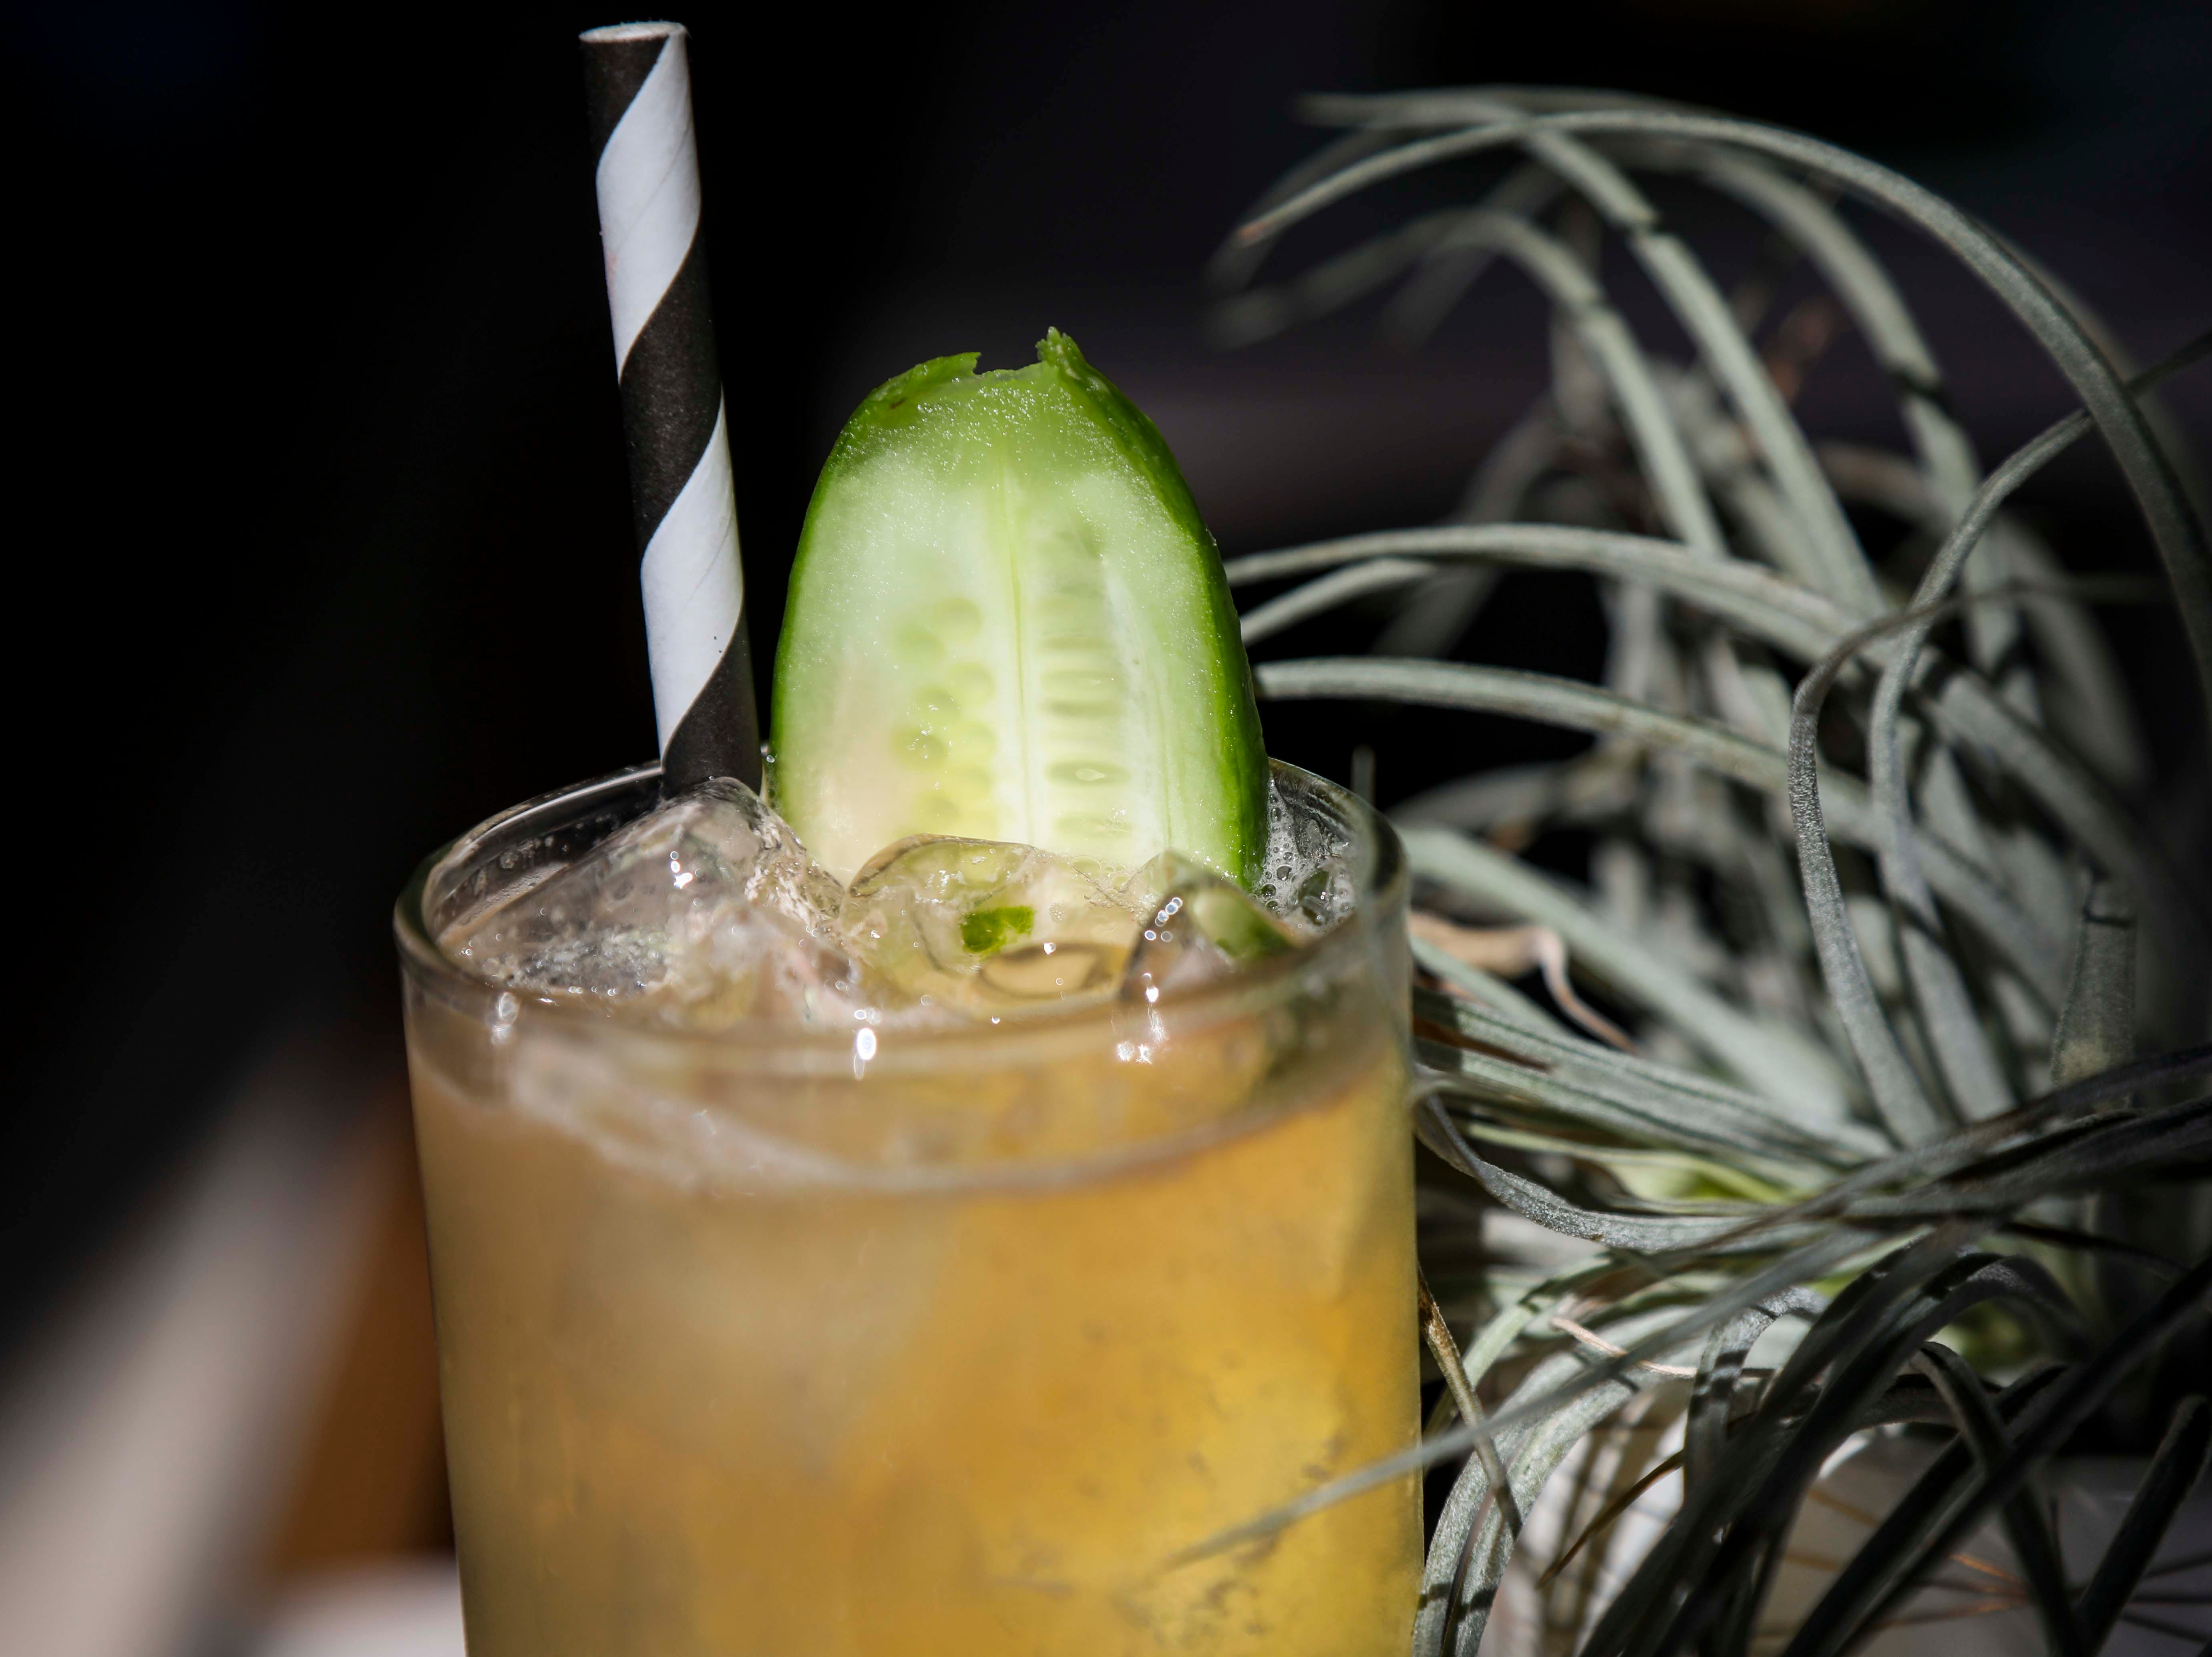 The Thought That Counts cocktail, a vodka based cocktail with fresh squeezed lime juice, house made cucumber syrup, aromatic bitters and a strip of English cucumber to garnish inside Naive in NuLu on October 18, 2018.